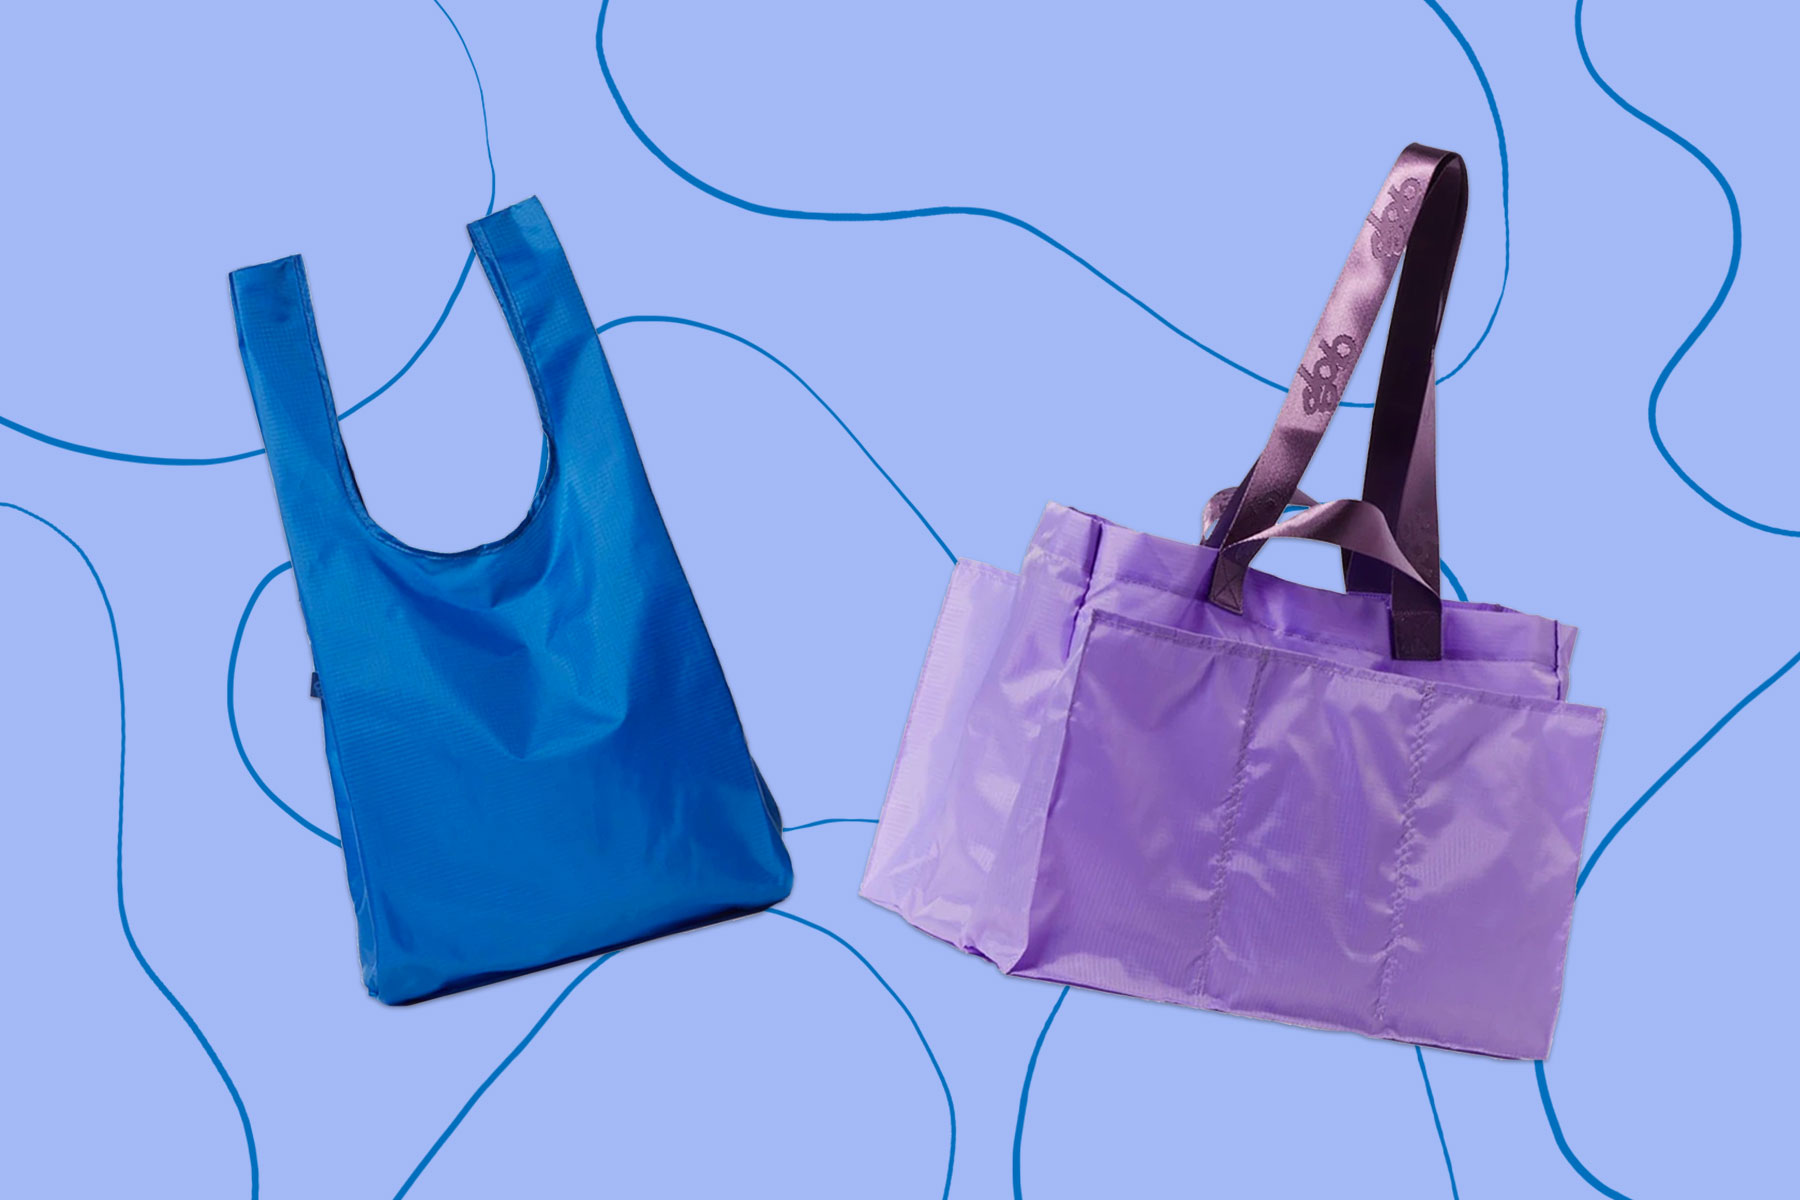 Blue and purple polyester nylon totes